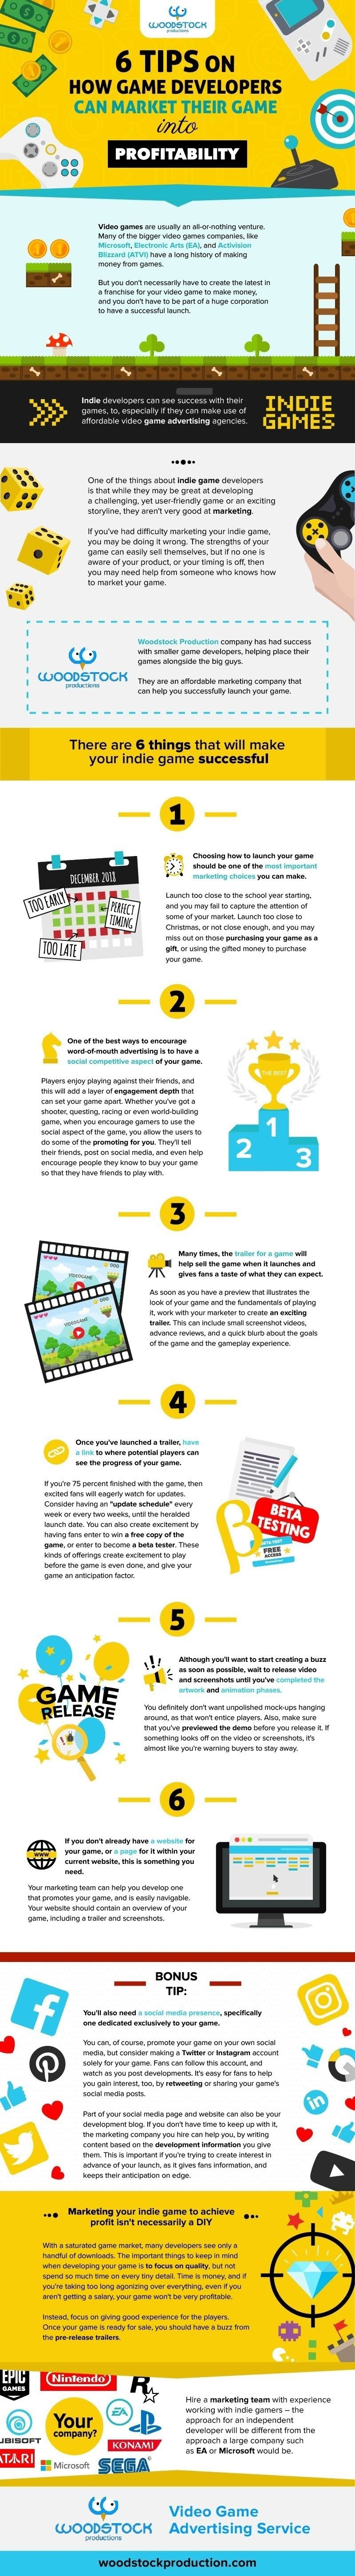 6 Tips on how to market your game by game developers #infographic